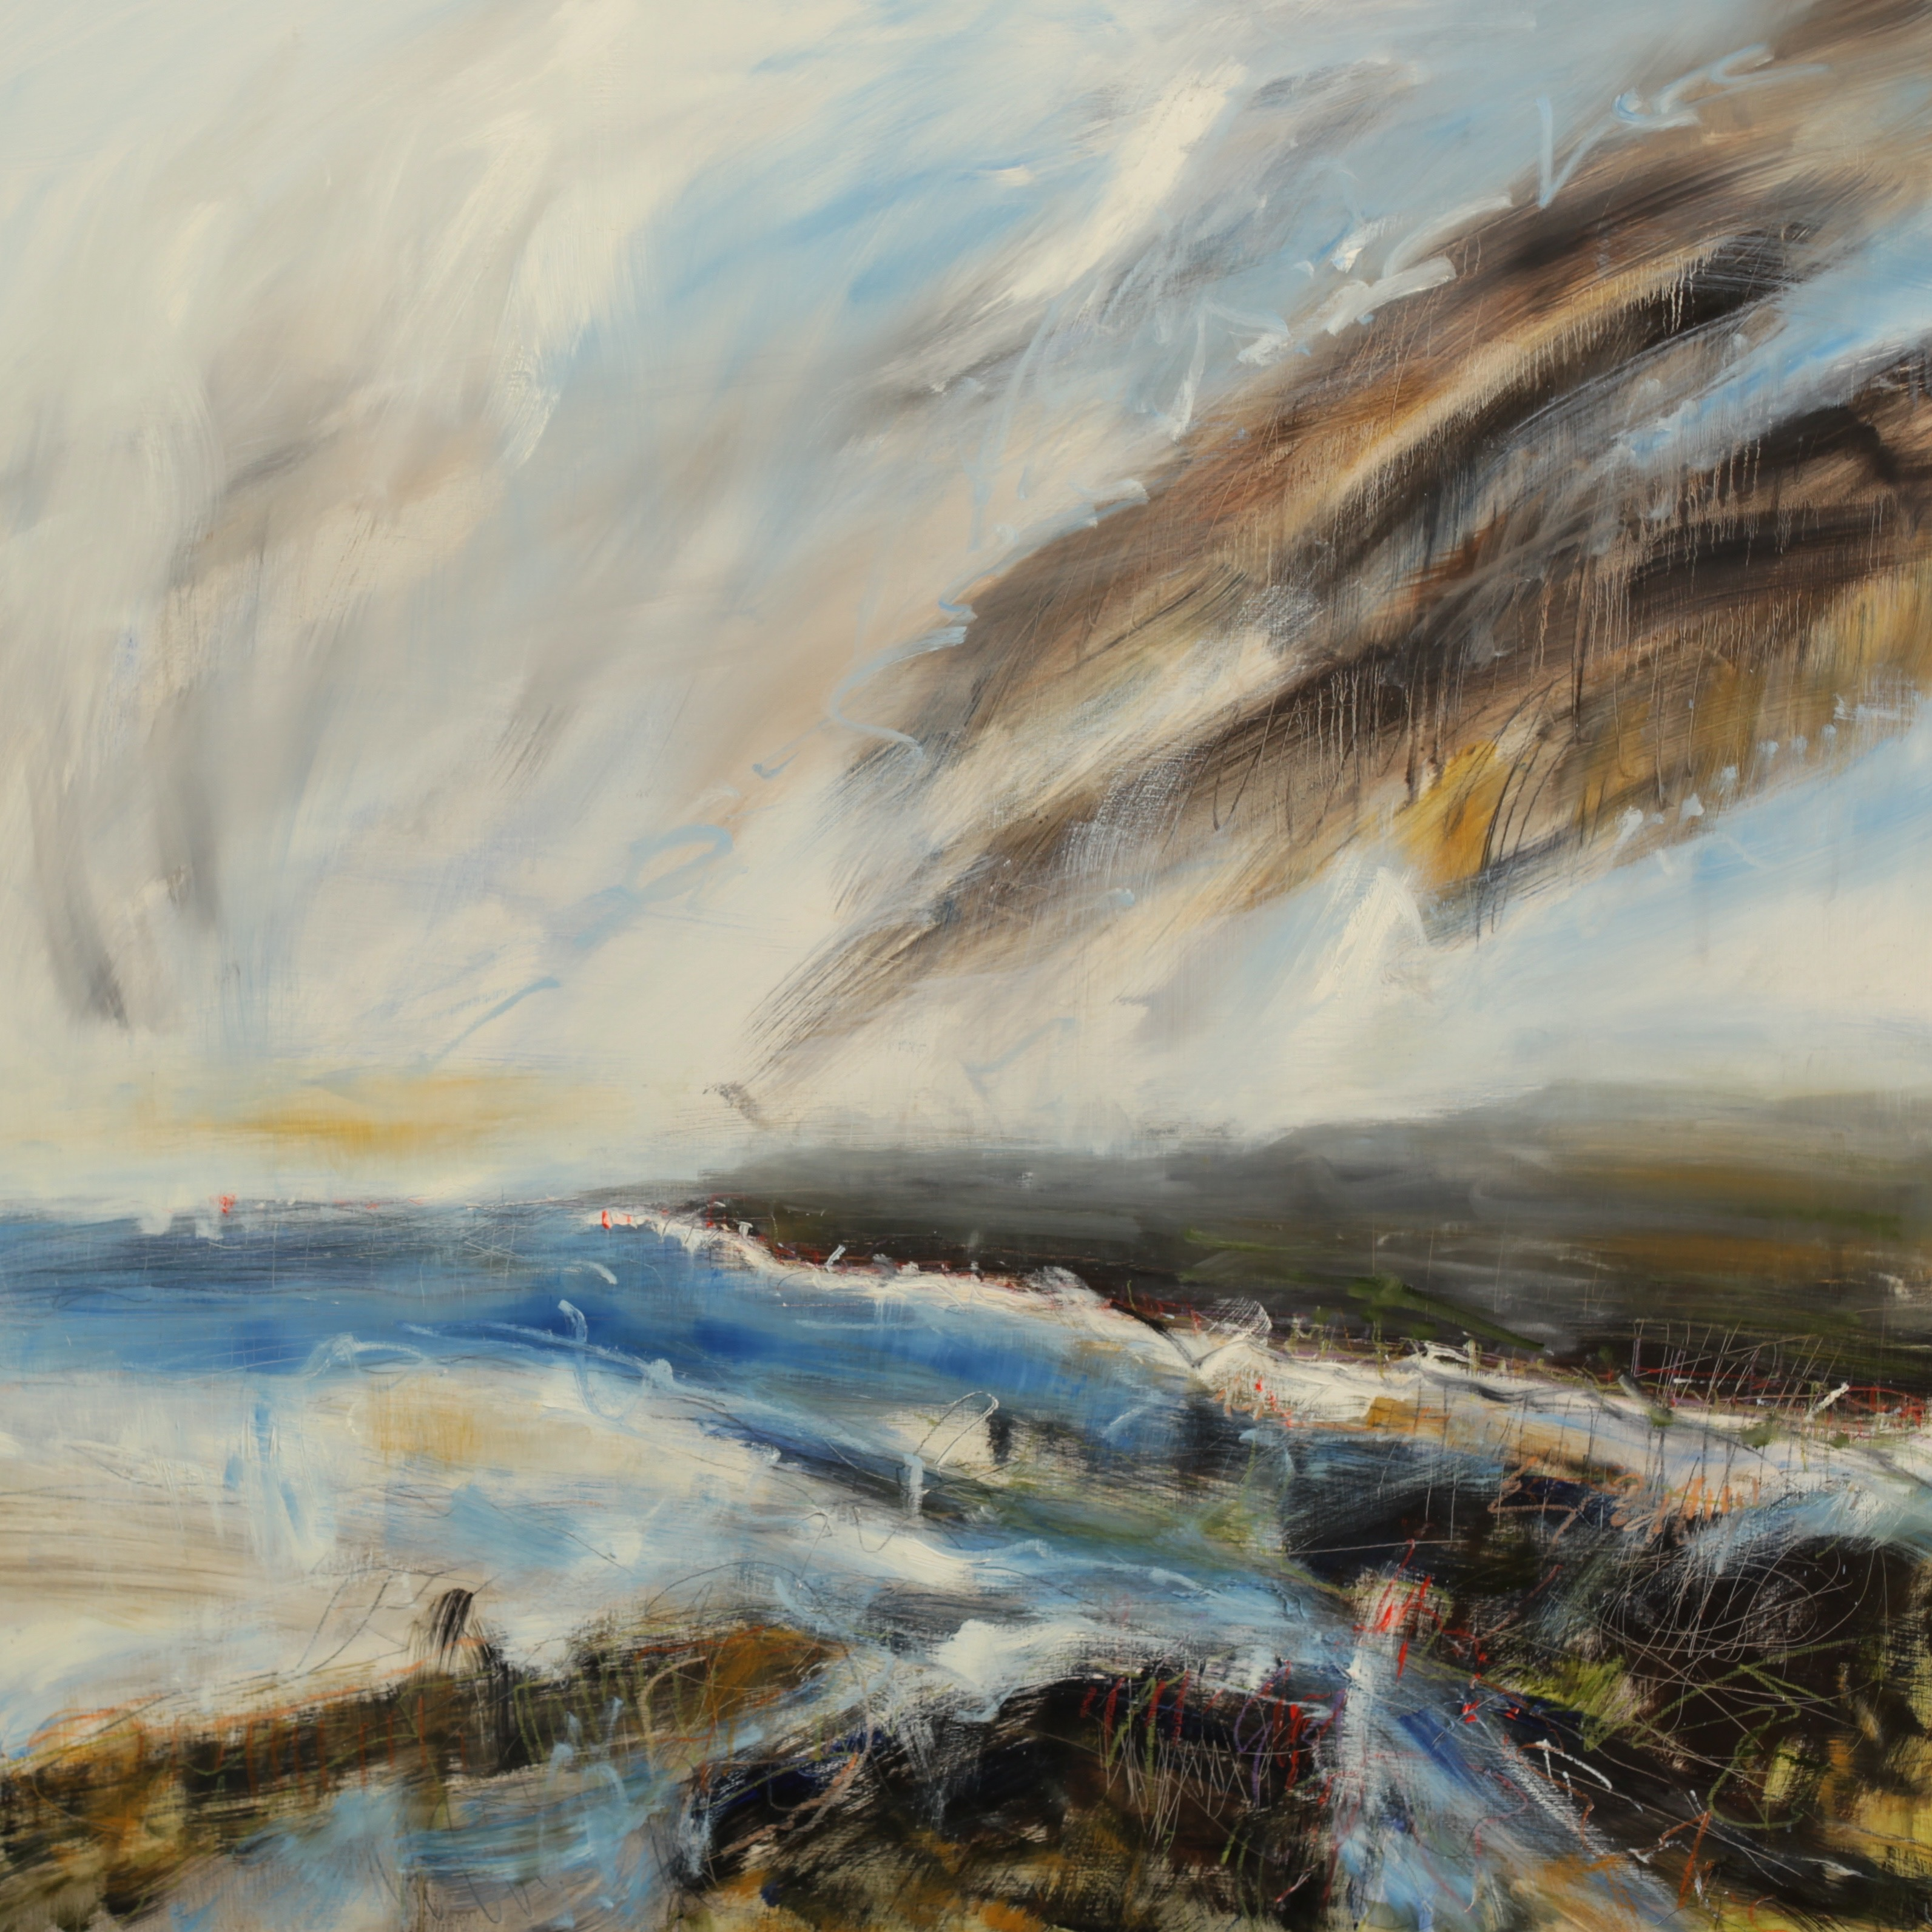 Lucy Marks Wild Skies OIL on wood panel 120x120cm